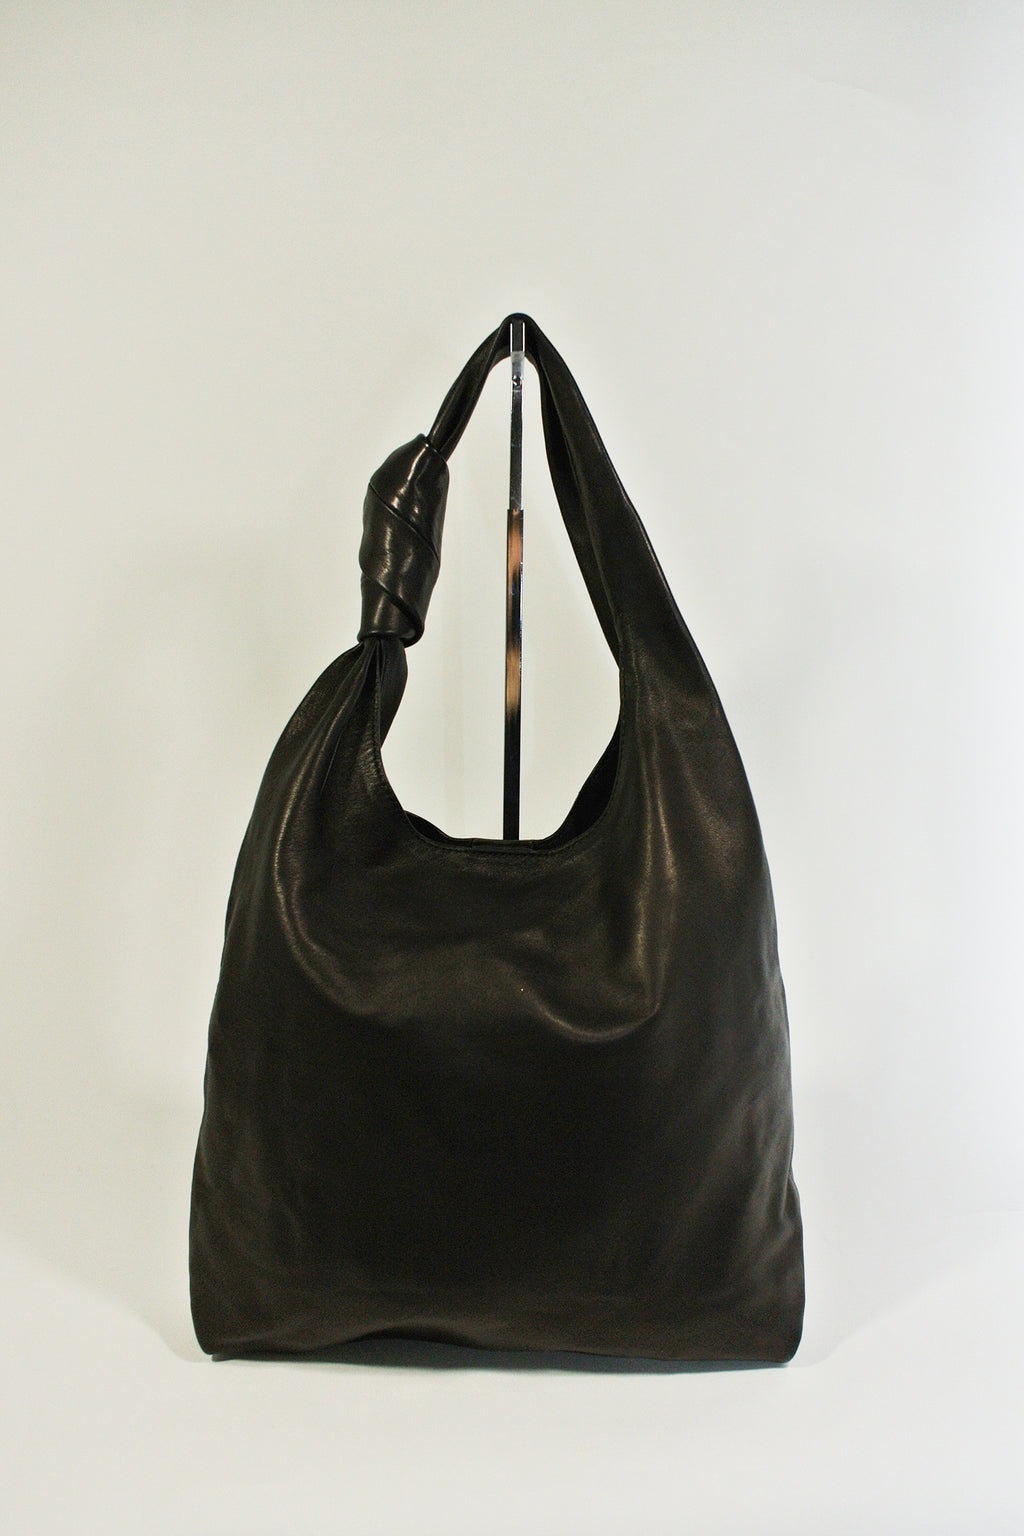 Loeffler Randall Black Leather Knot Bag